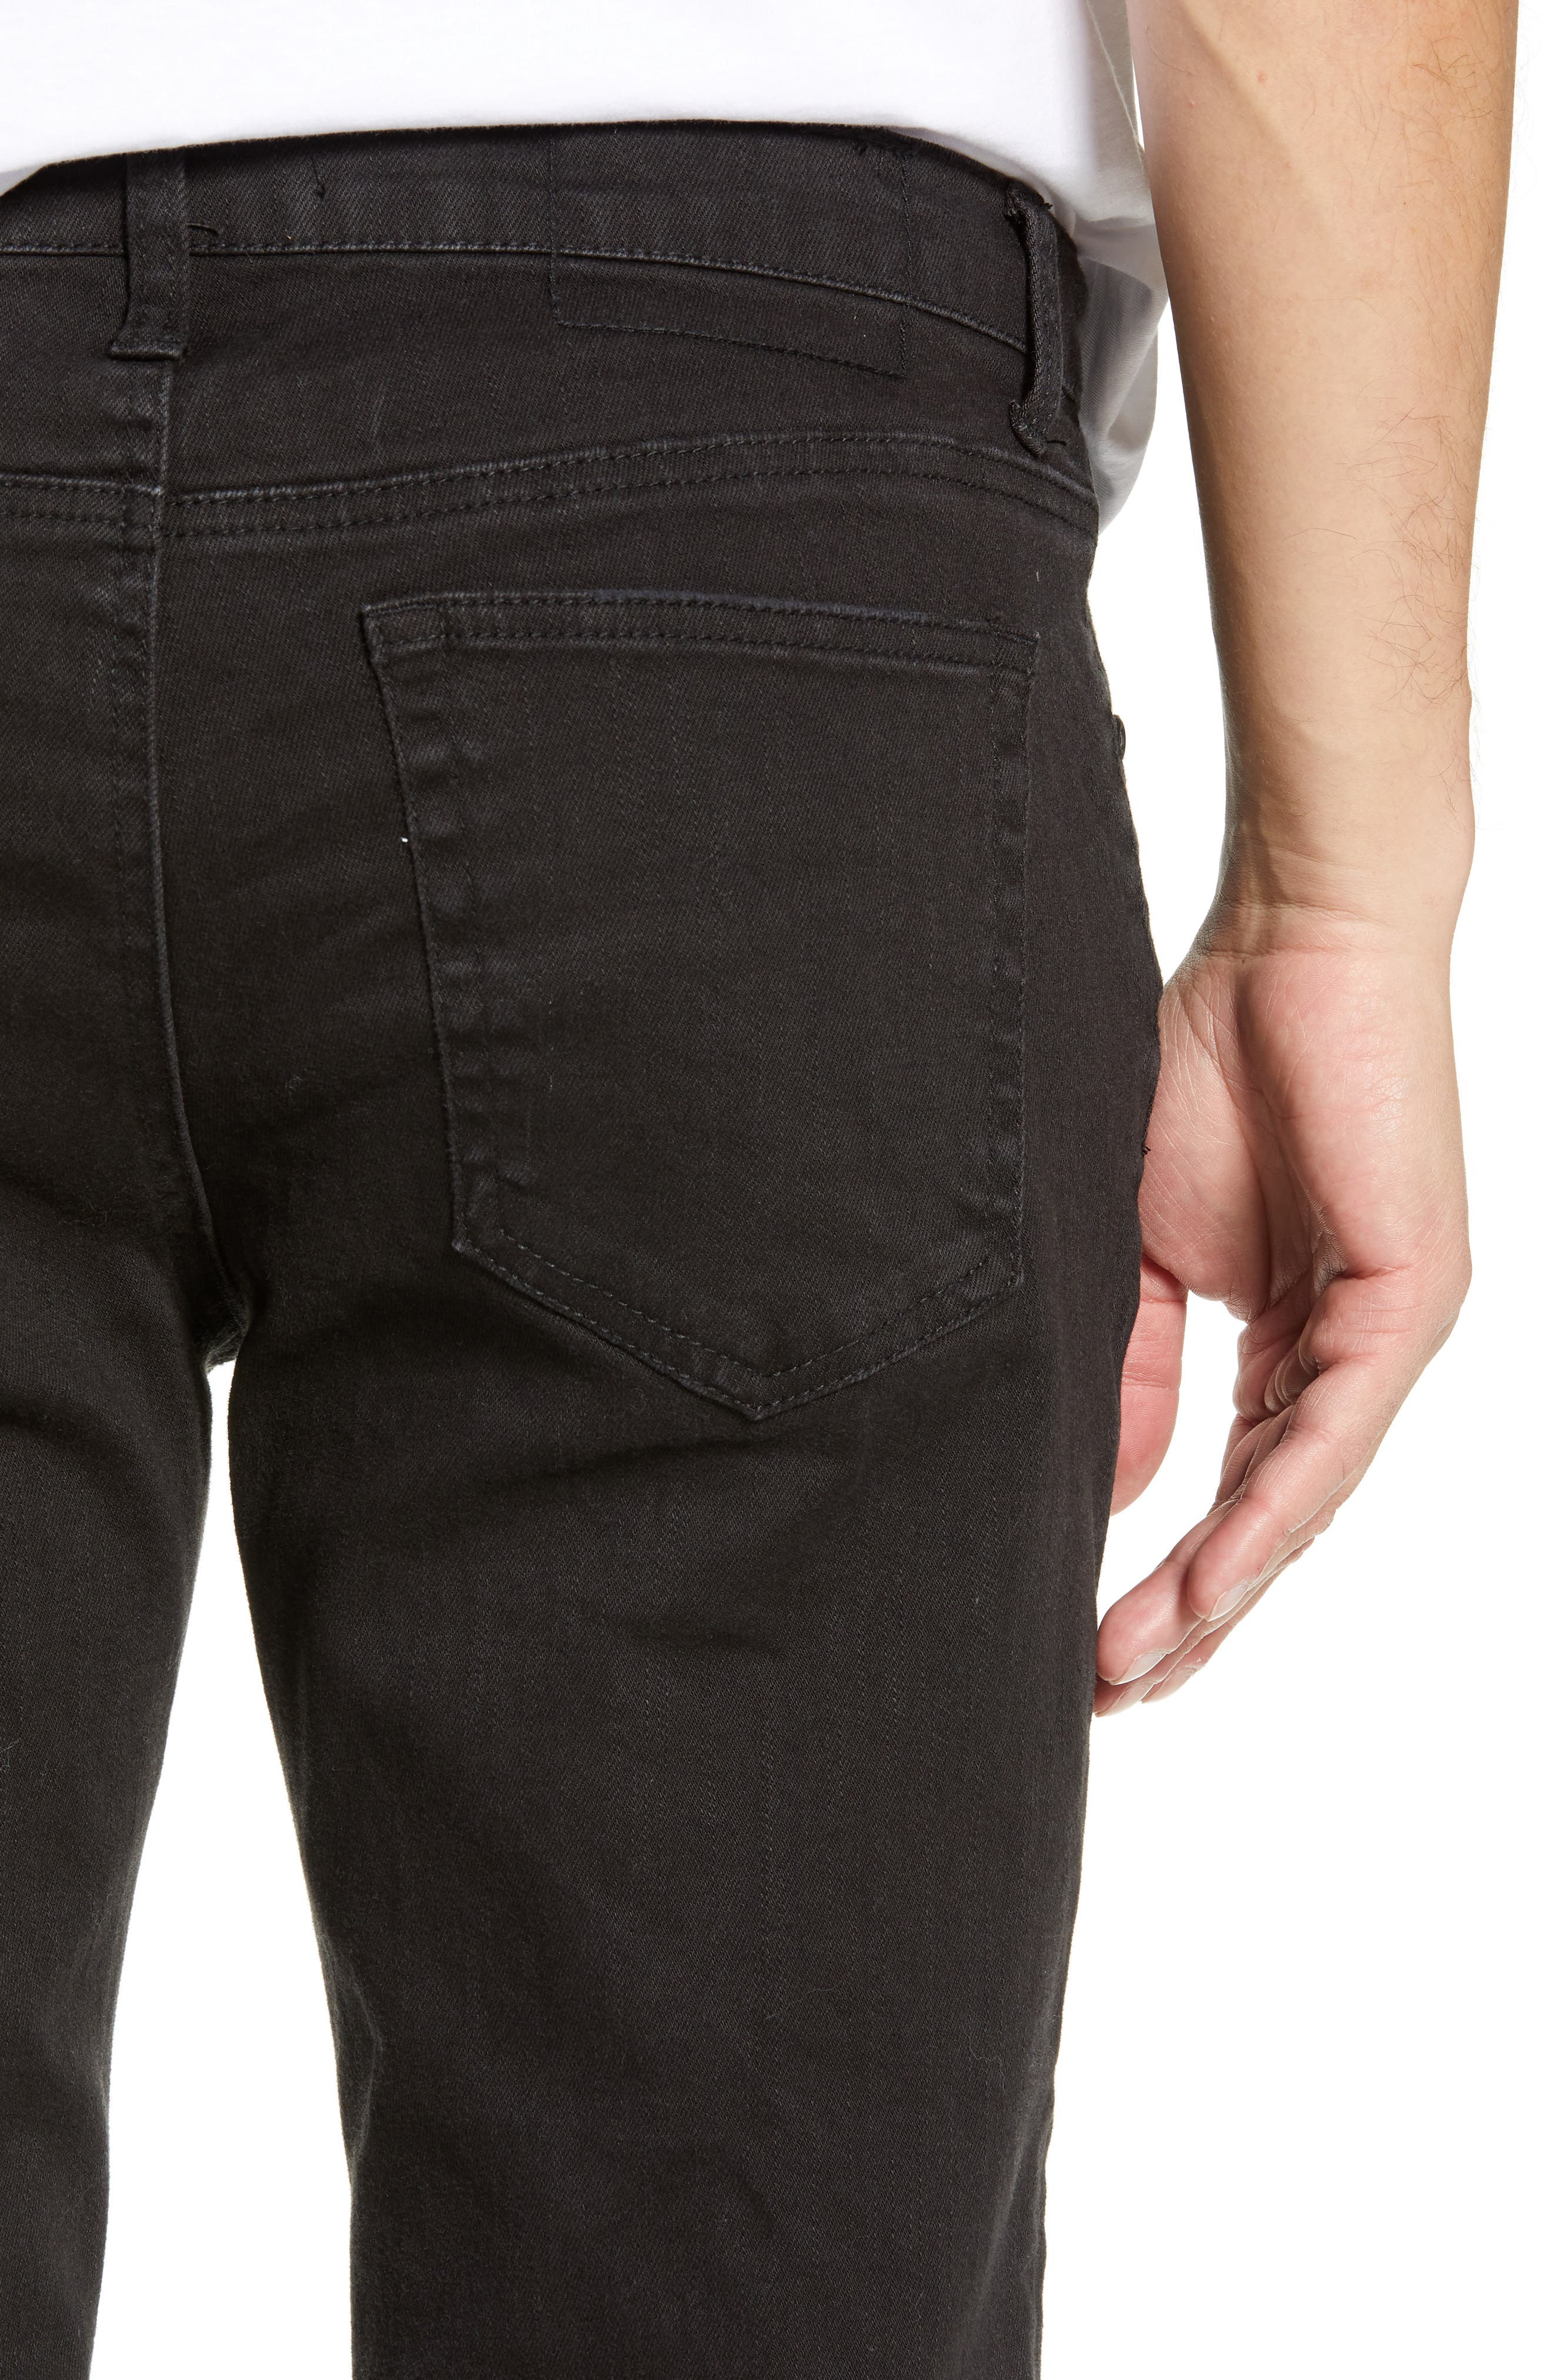 Shredded Slim Fit Jeans,                             Alternate thumbnail 4, color,                             BLACK STONE WASH